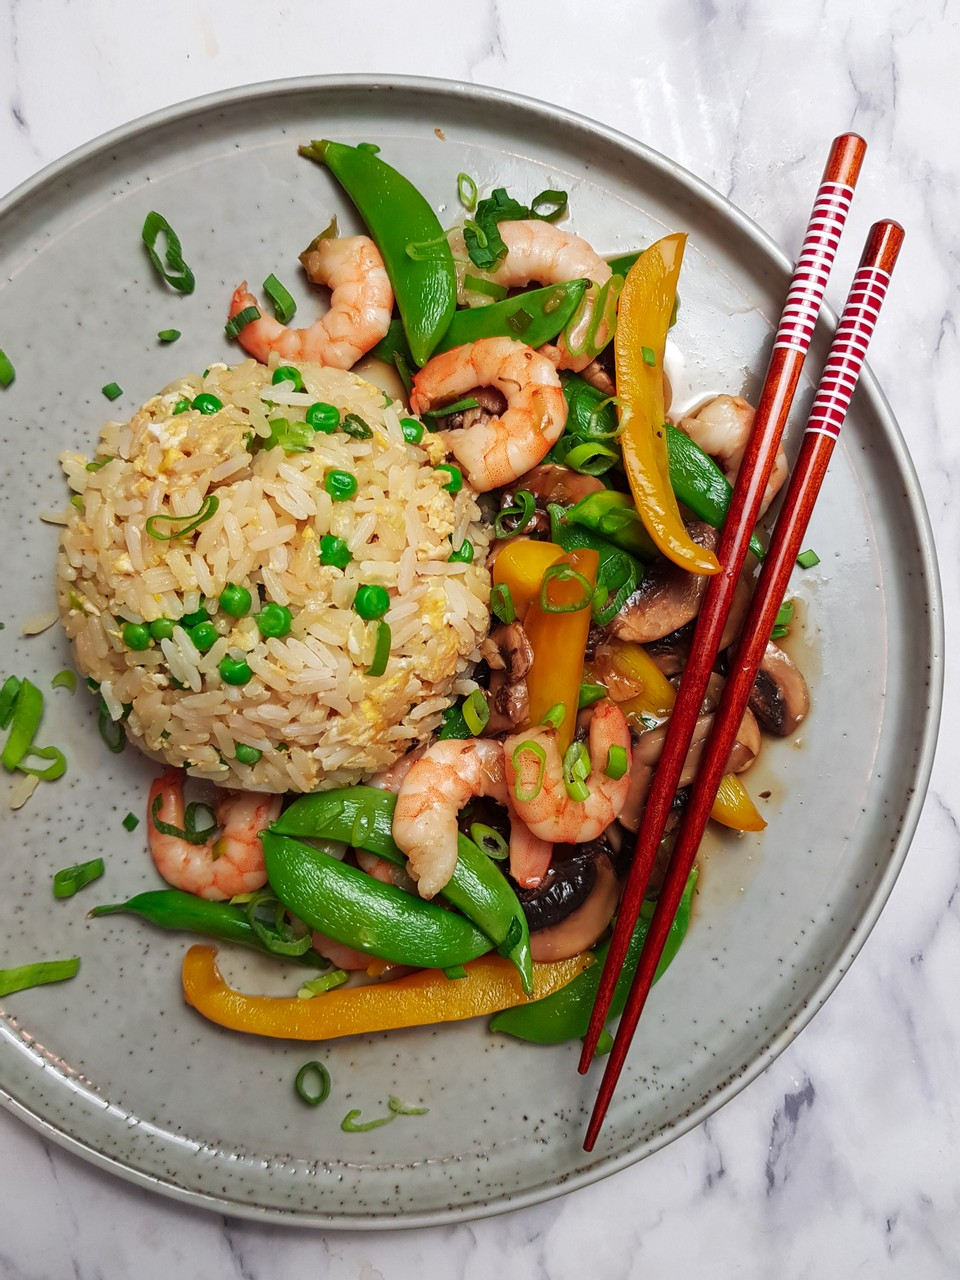 Prawns in ginger and garlic with egg fried rice